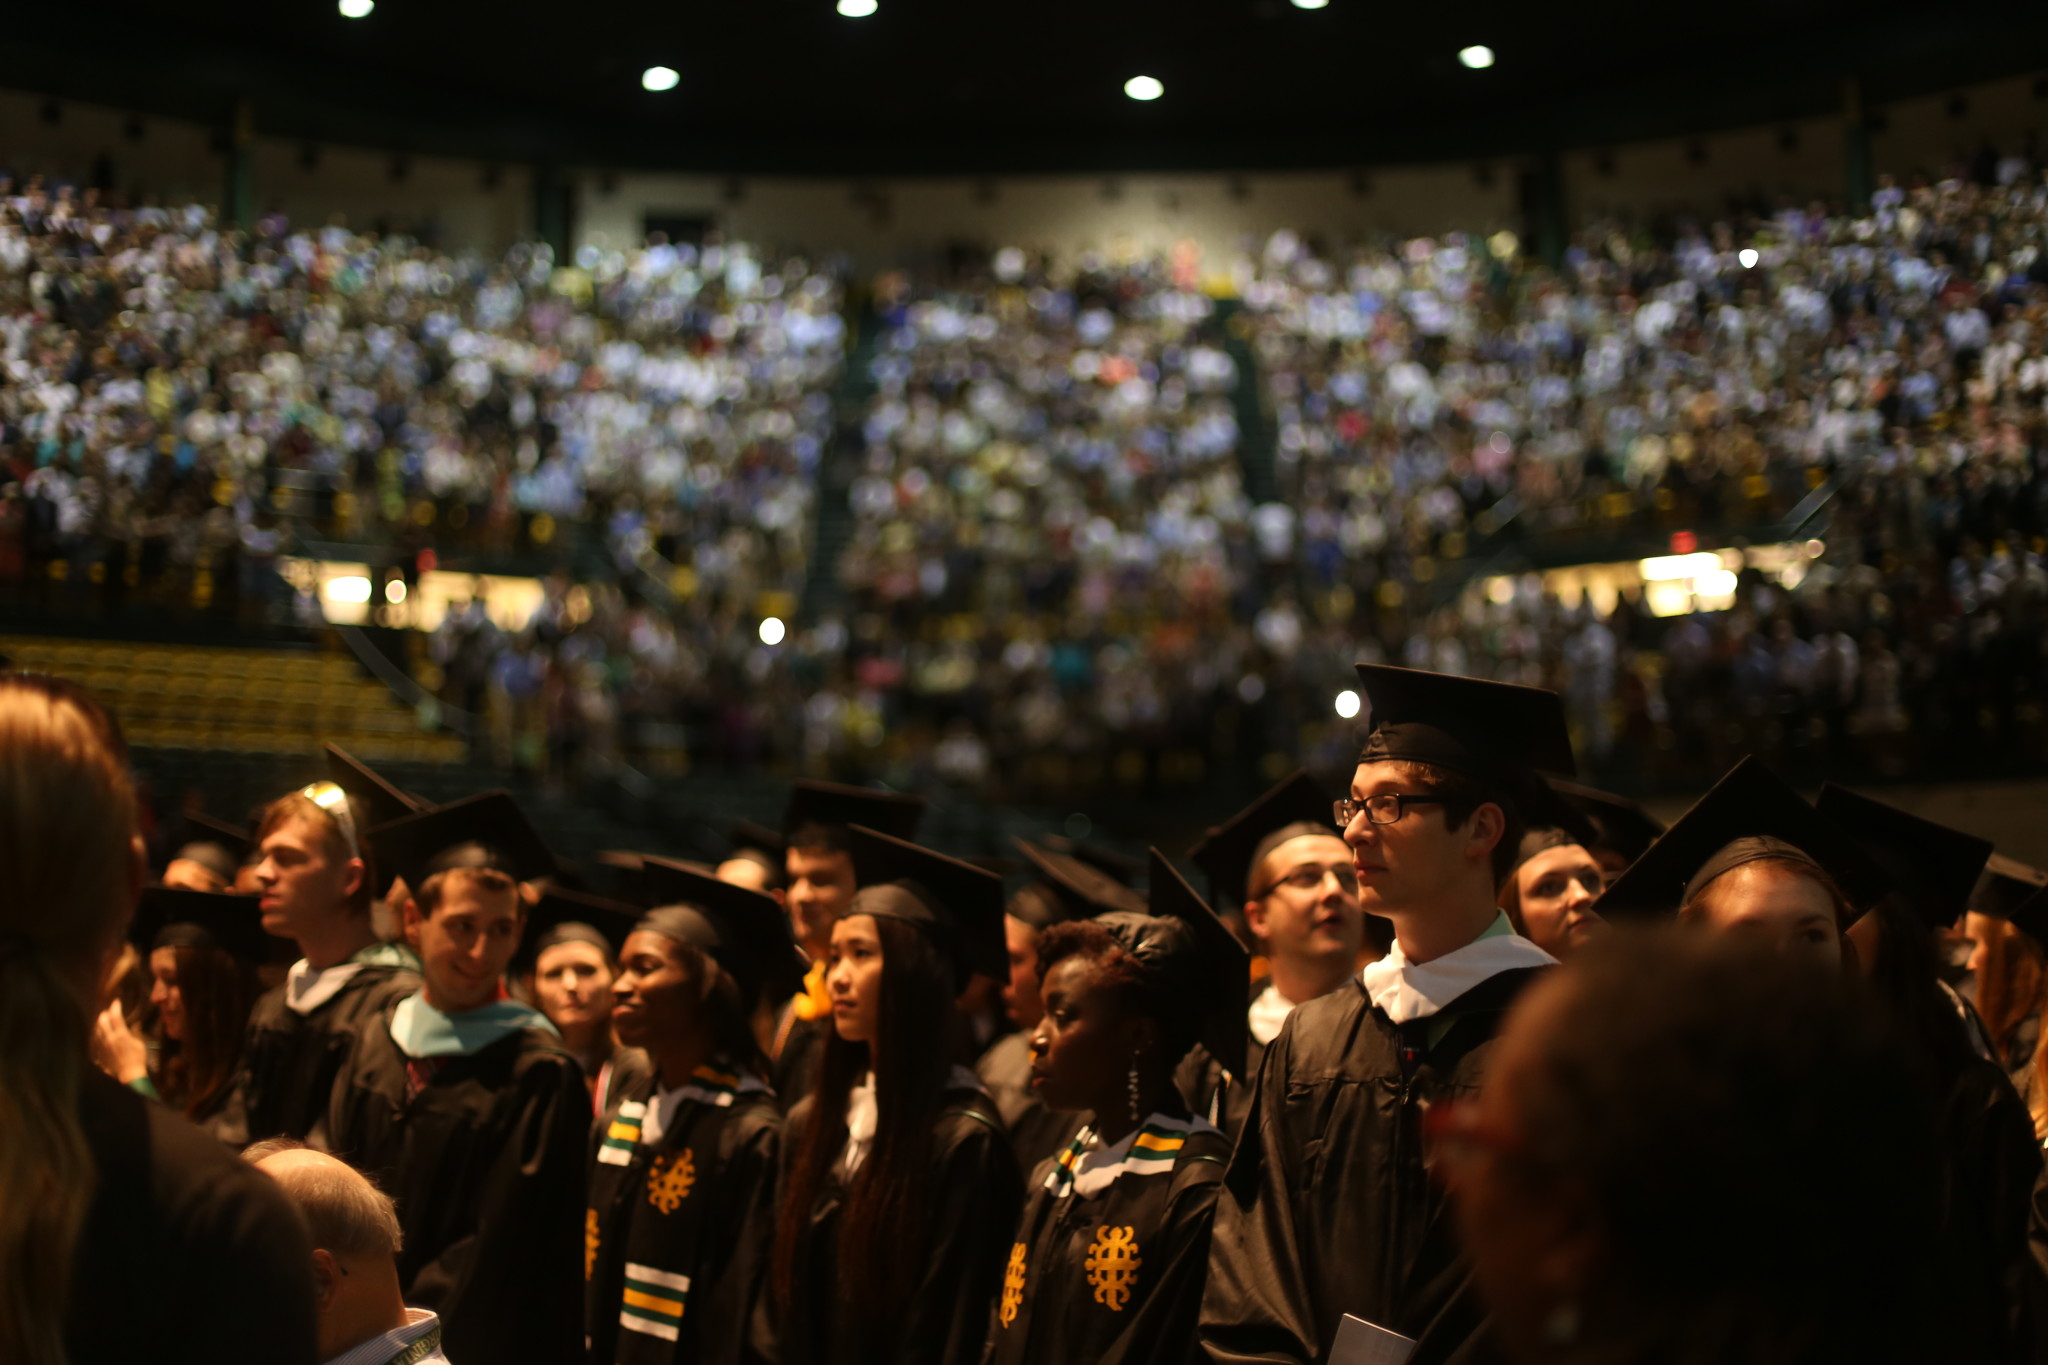 More than 2,000 degrees were conferred at The College of William and Mary's 2016 Commencement ceremony. TUCKER HIGGINS / THE FLAT HAT